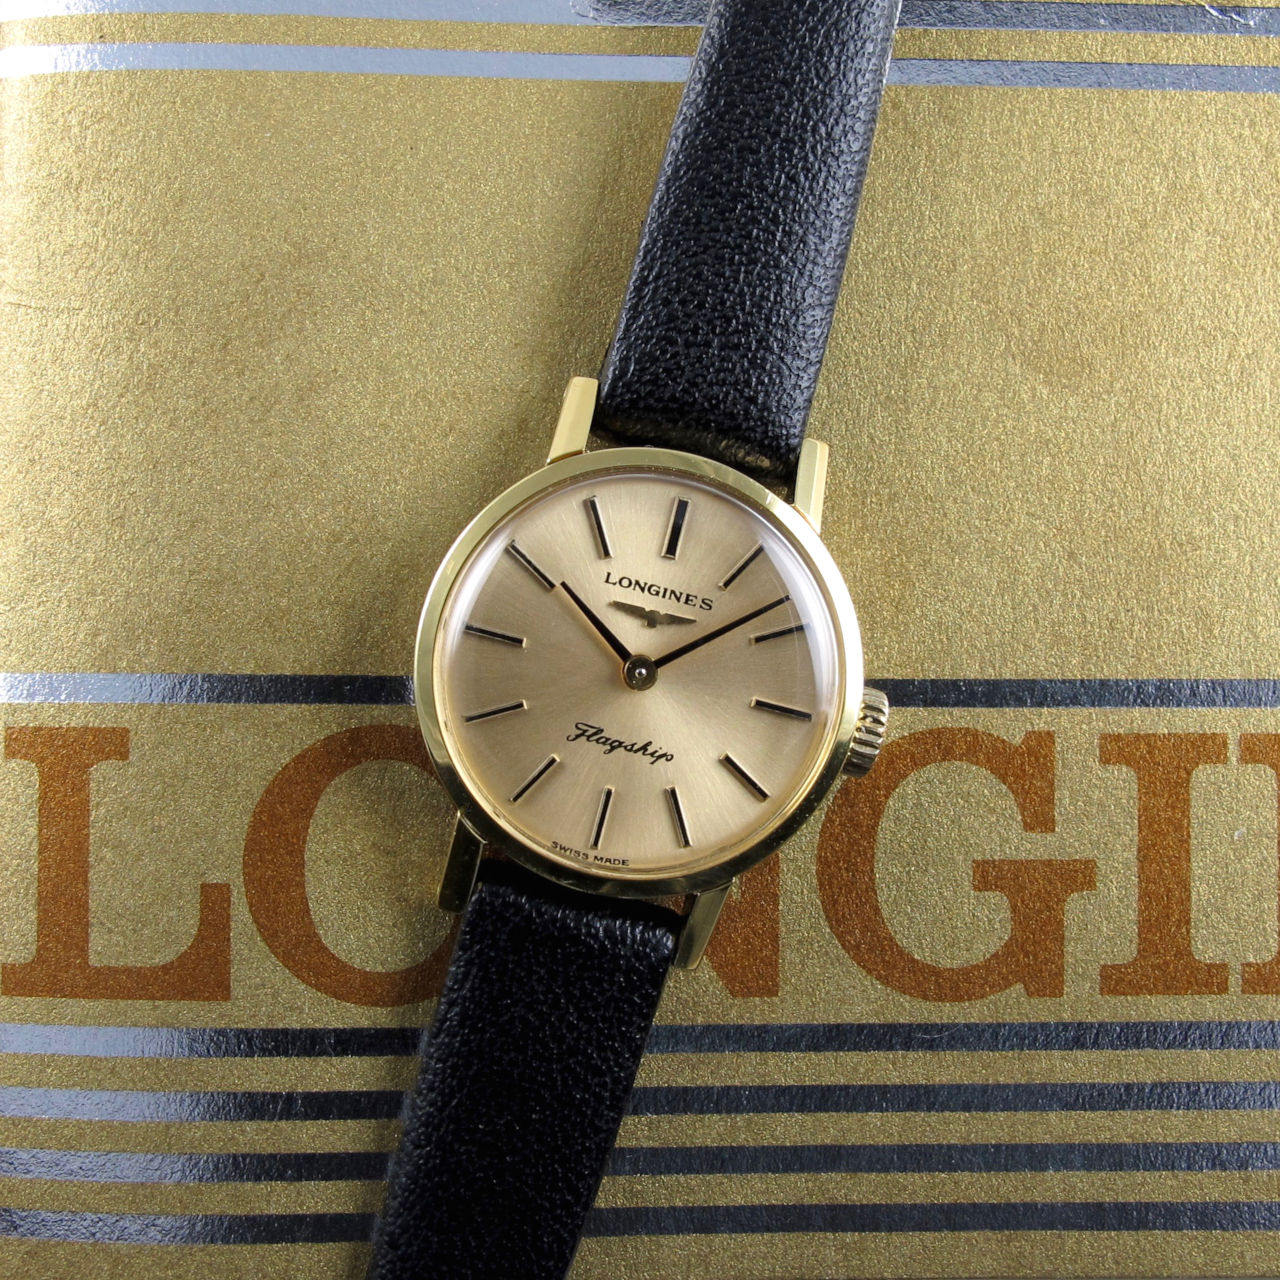 Longines Flagship Ref. 4014 -3 gold plated , circa 1975